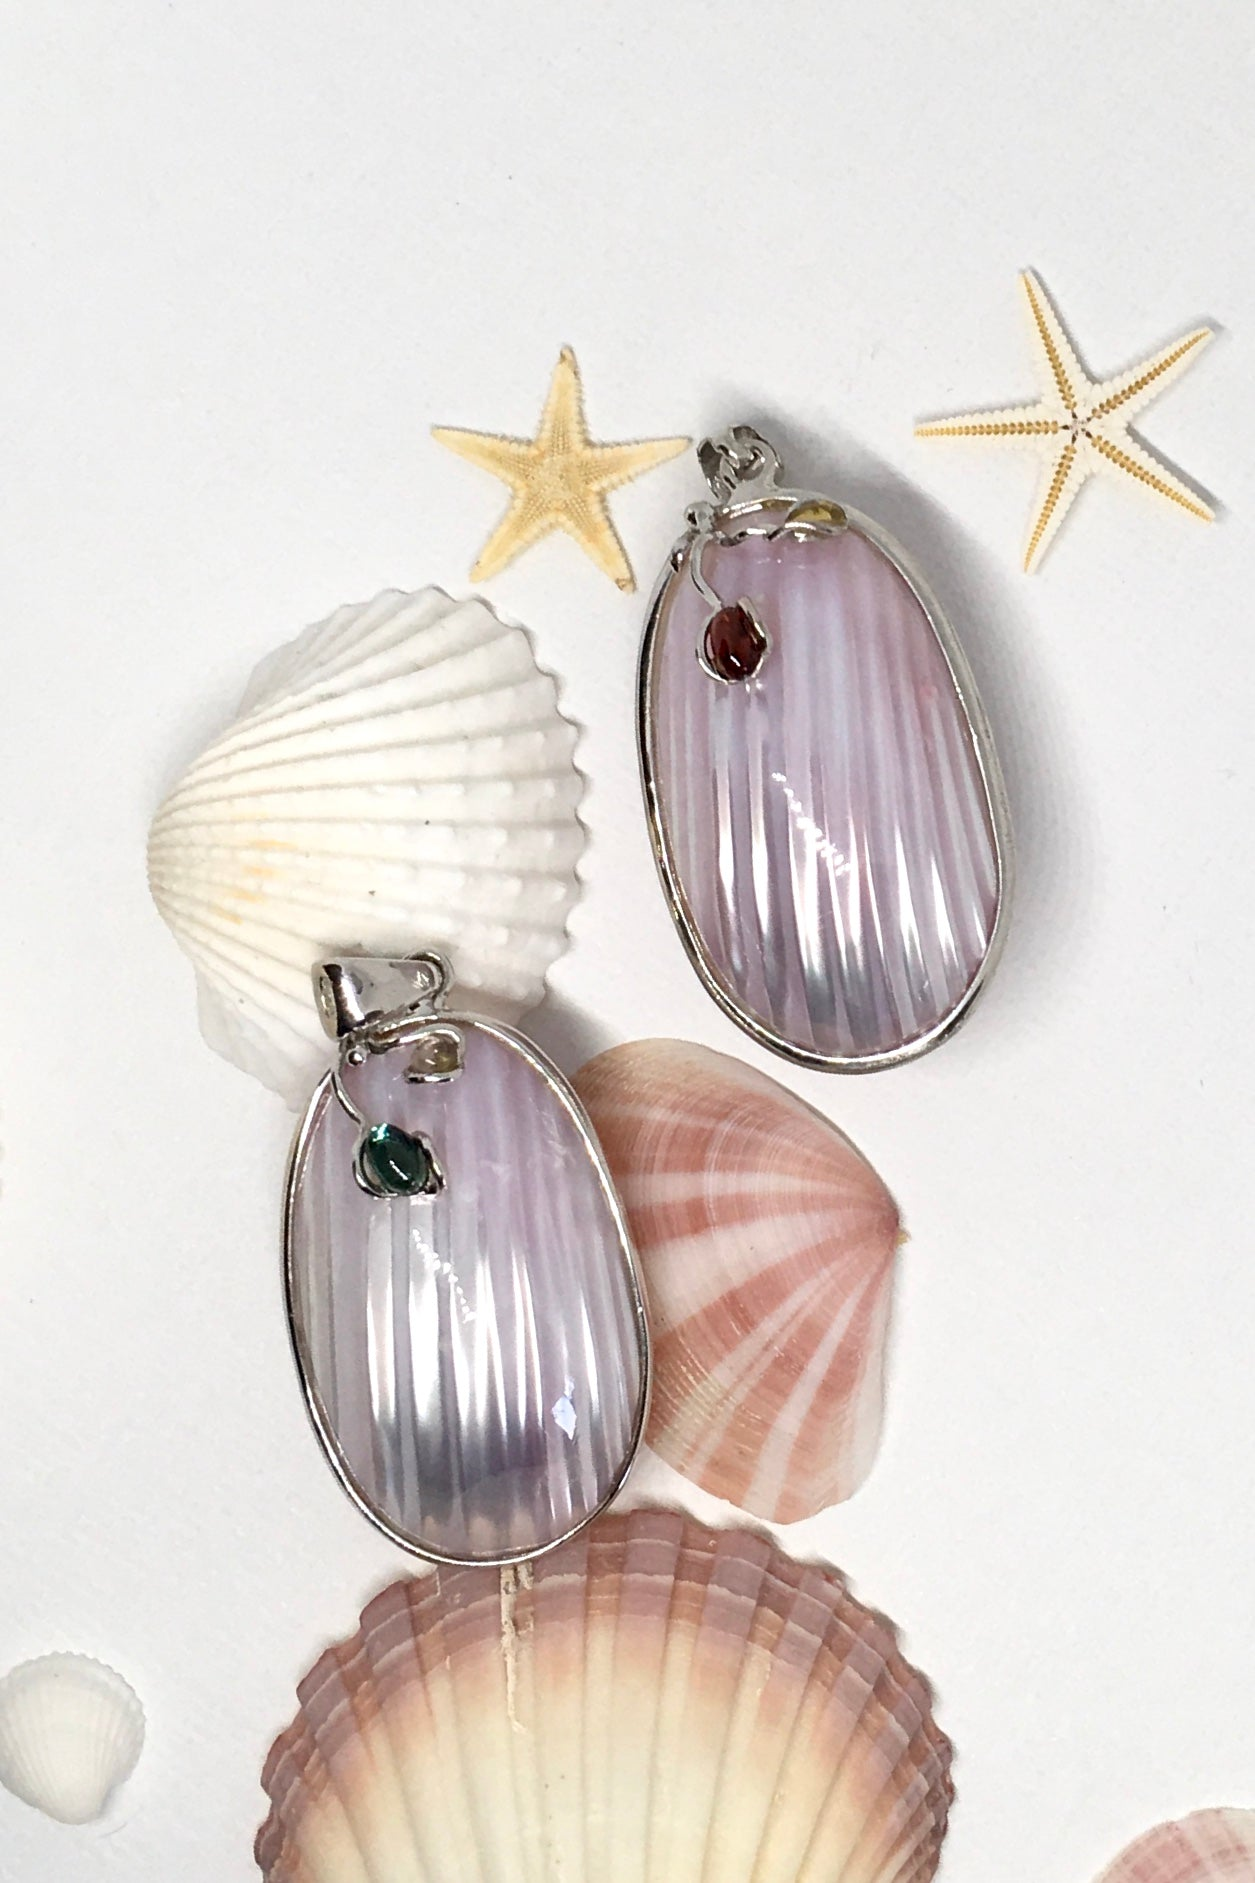 sweet gentle shell pendant, highly polished to enhance the grain of the sea shell